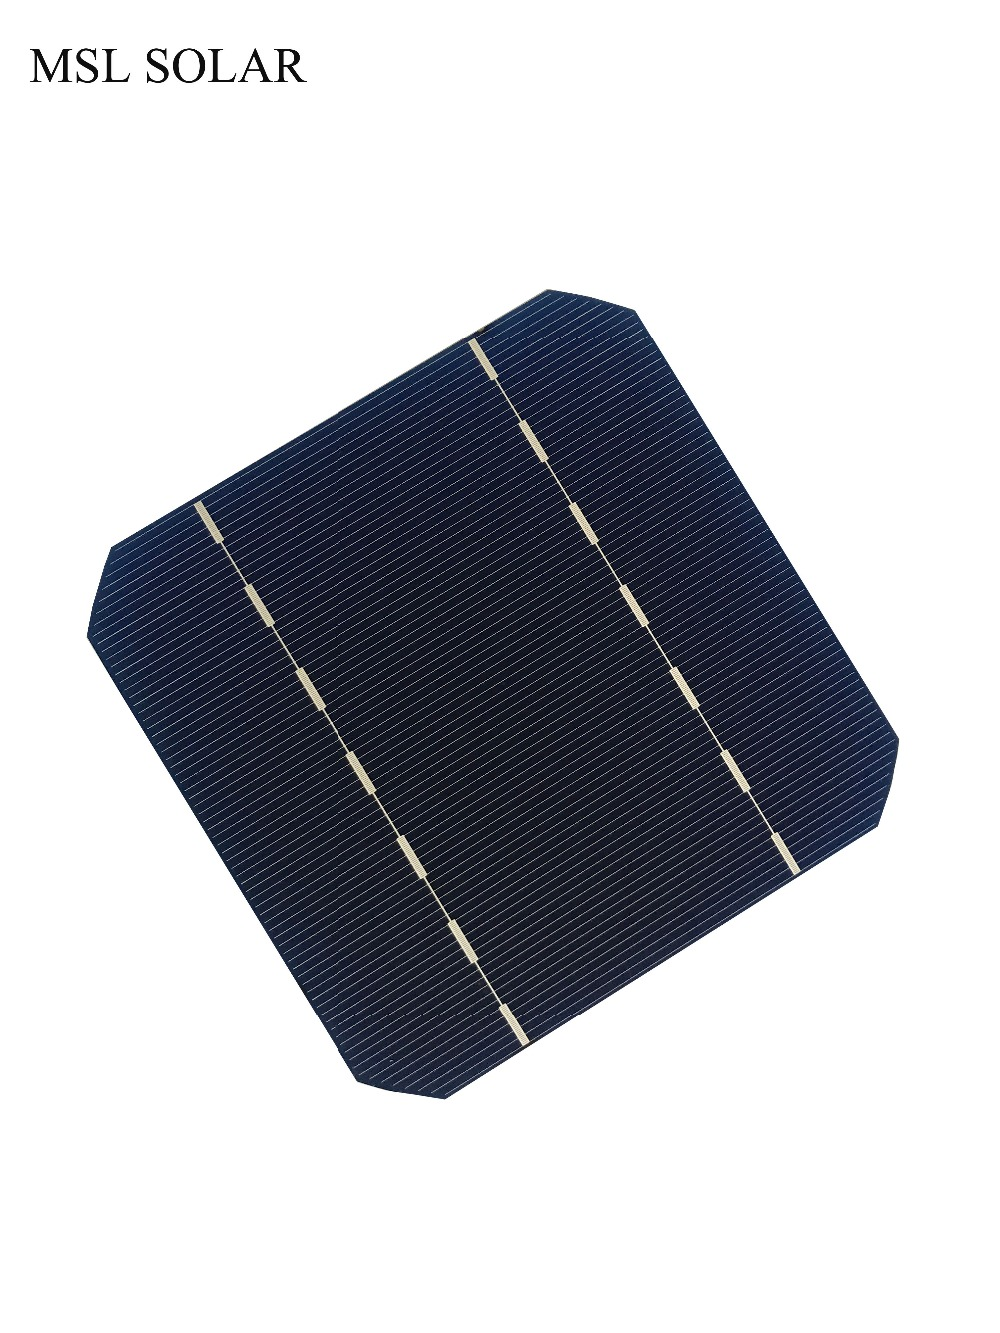 MSL SOLAR 100W DIY solar panel Kit 40pcs monocrystalline solar cell 5x5 with 20m Tabbing wire